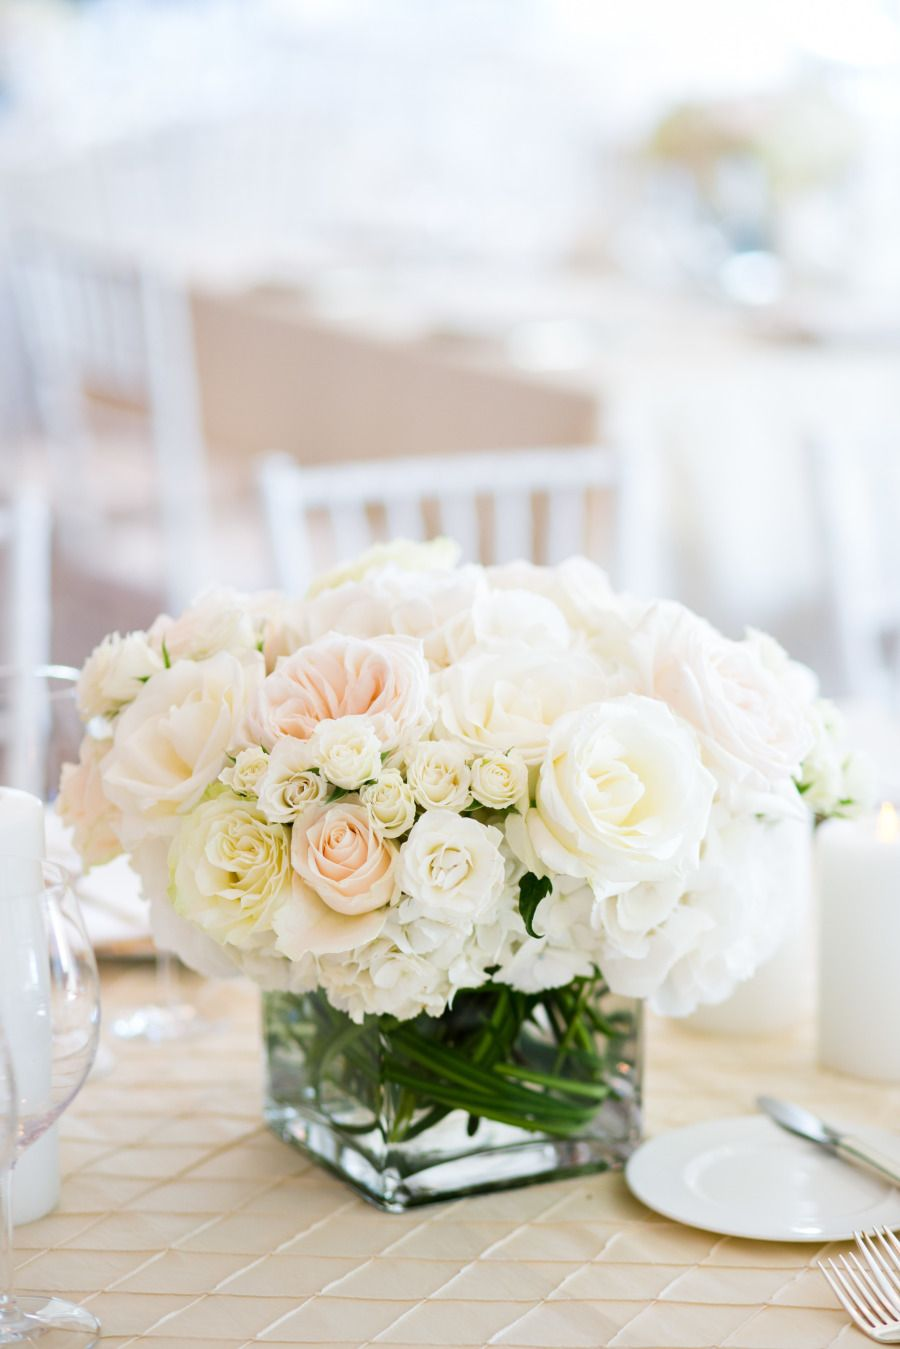 fresh white wedding bouquet. | here comes the bride | Pinterest ...